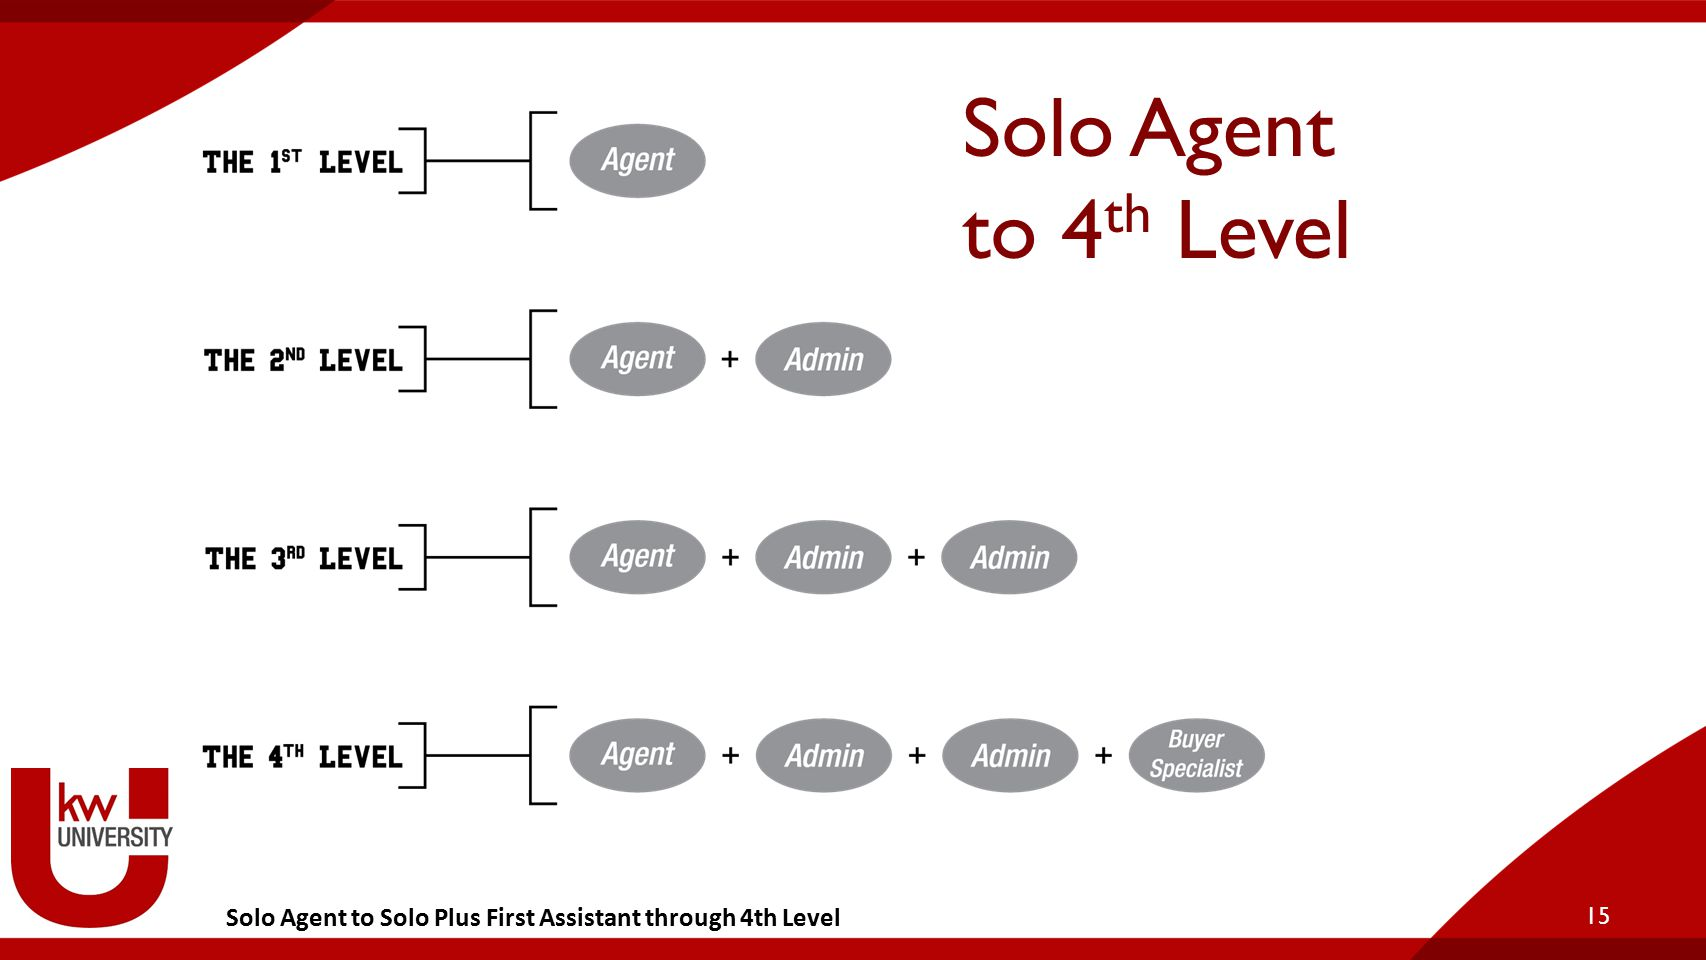 Solo Agent to Solo Plus First Assistant through 4th Level Solo Agent to 4 th Level 15